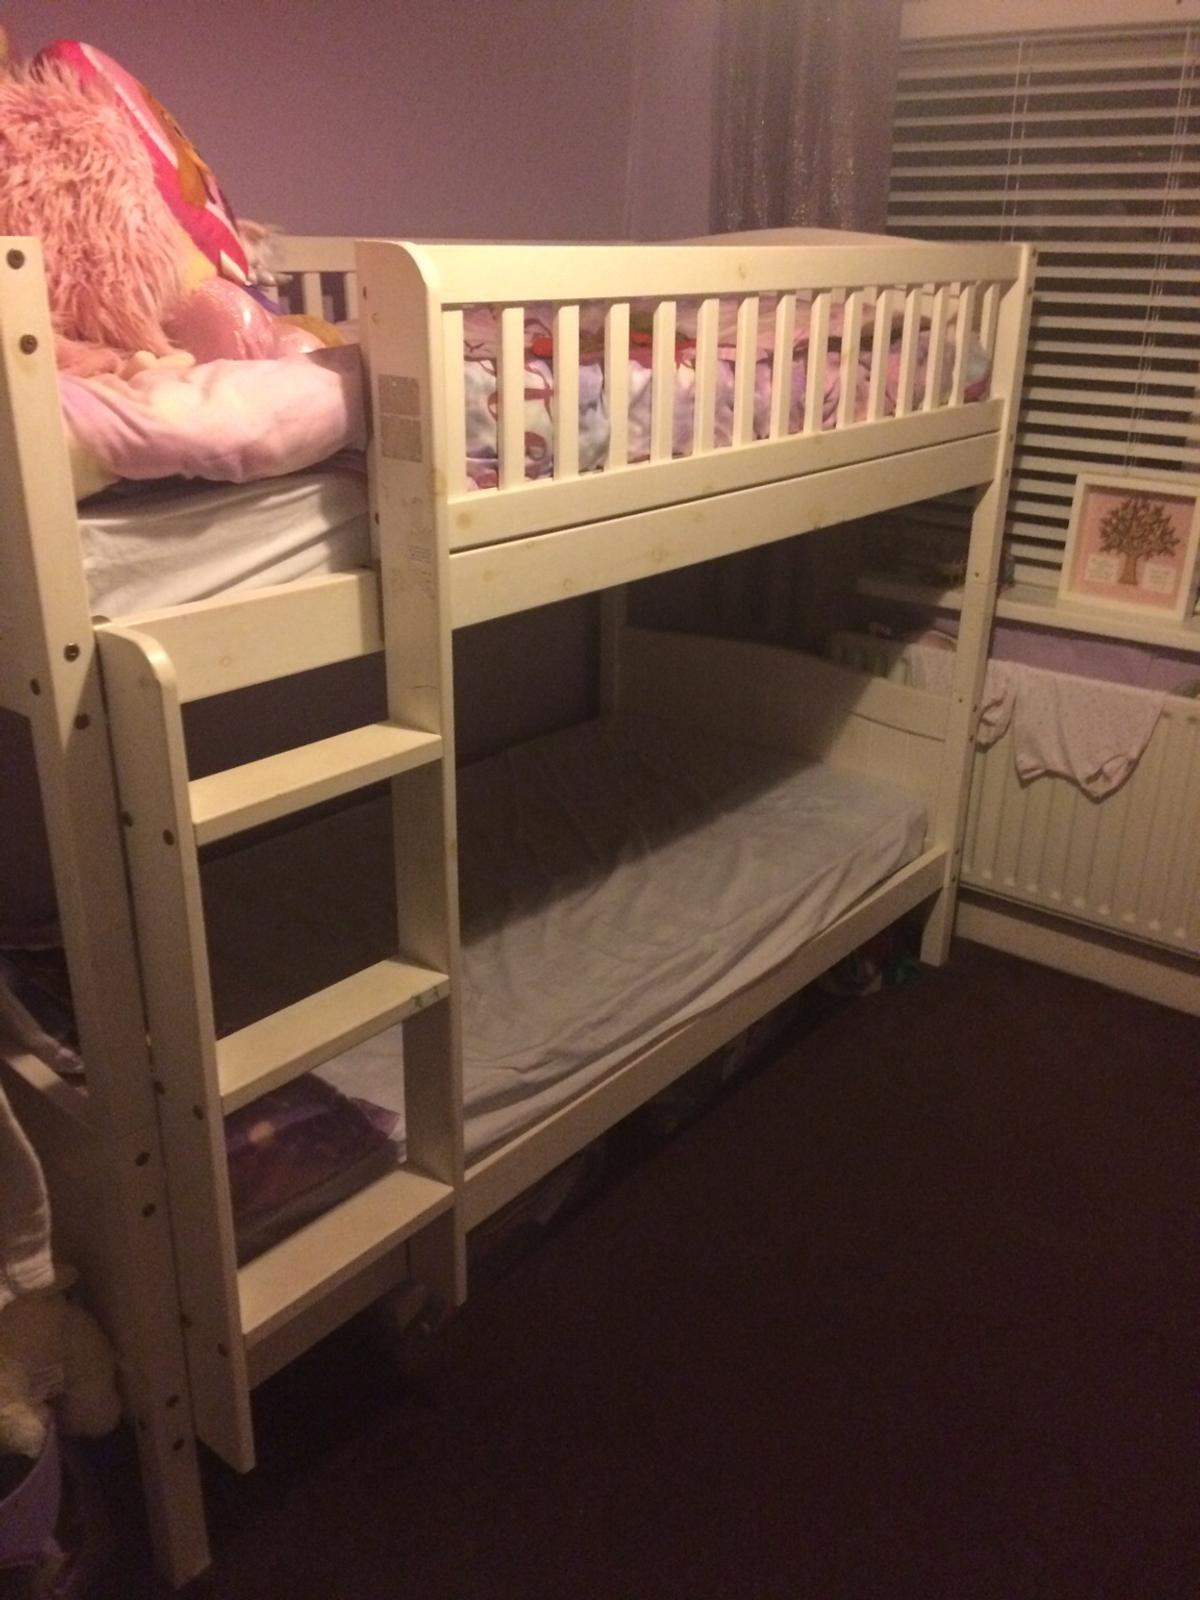 Bunk beds in good condition, from smoke free home, mattresses included, will be available to collect on Saturday 18th jan. No offers please. Relisted due to time waster.